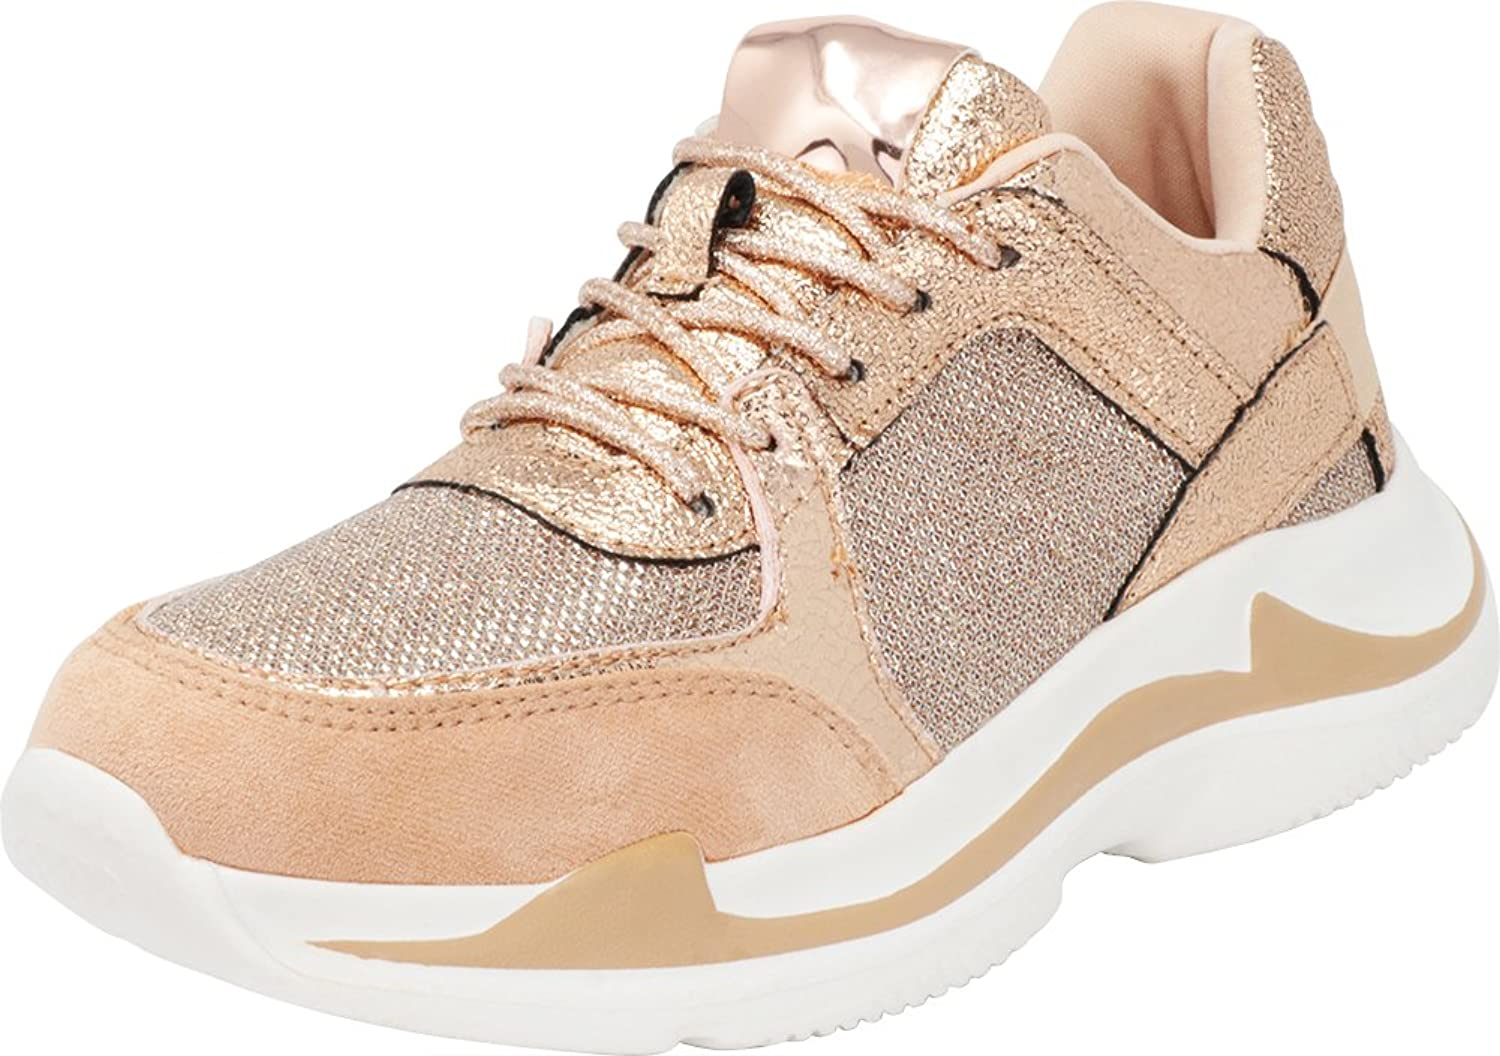 Cambridge Select Women's 90s Glitter Ugly Dad Lace-Up Fashion Sneaker